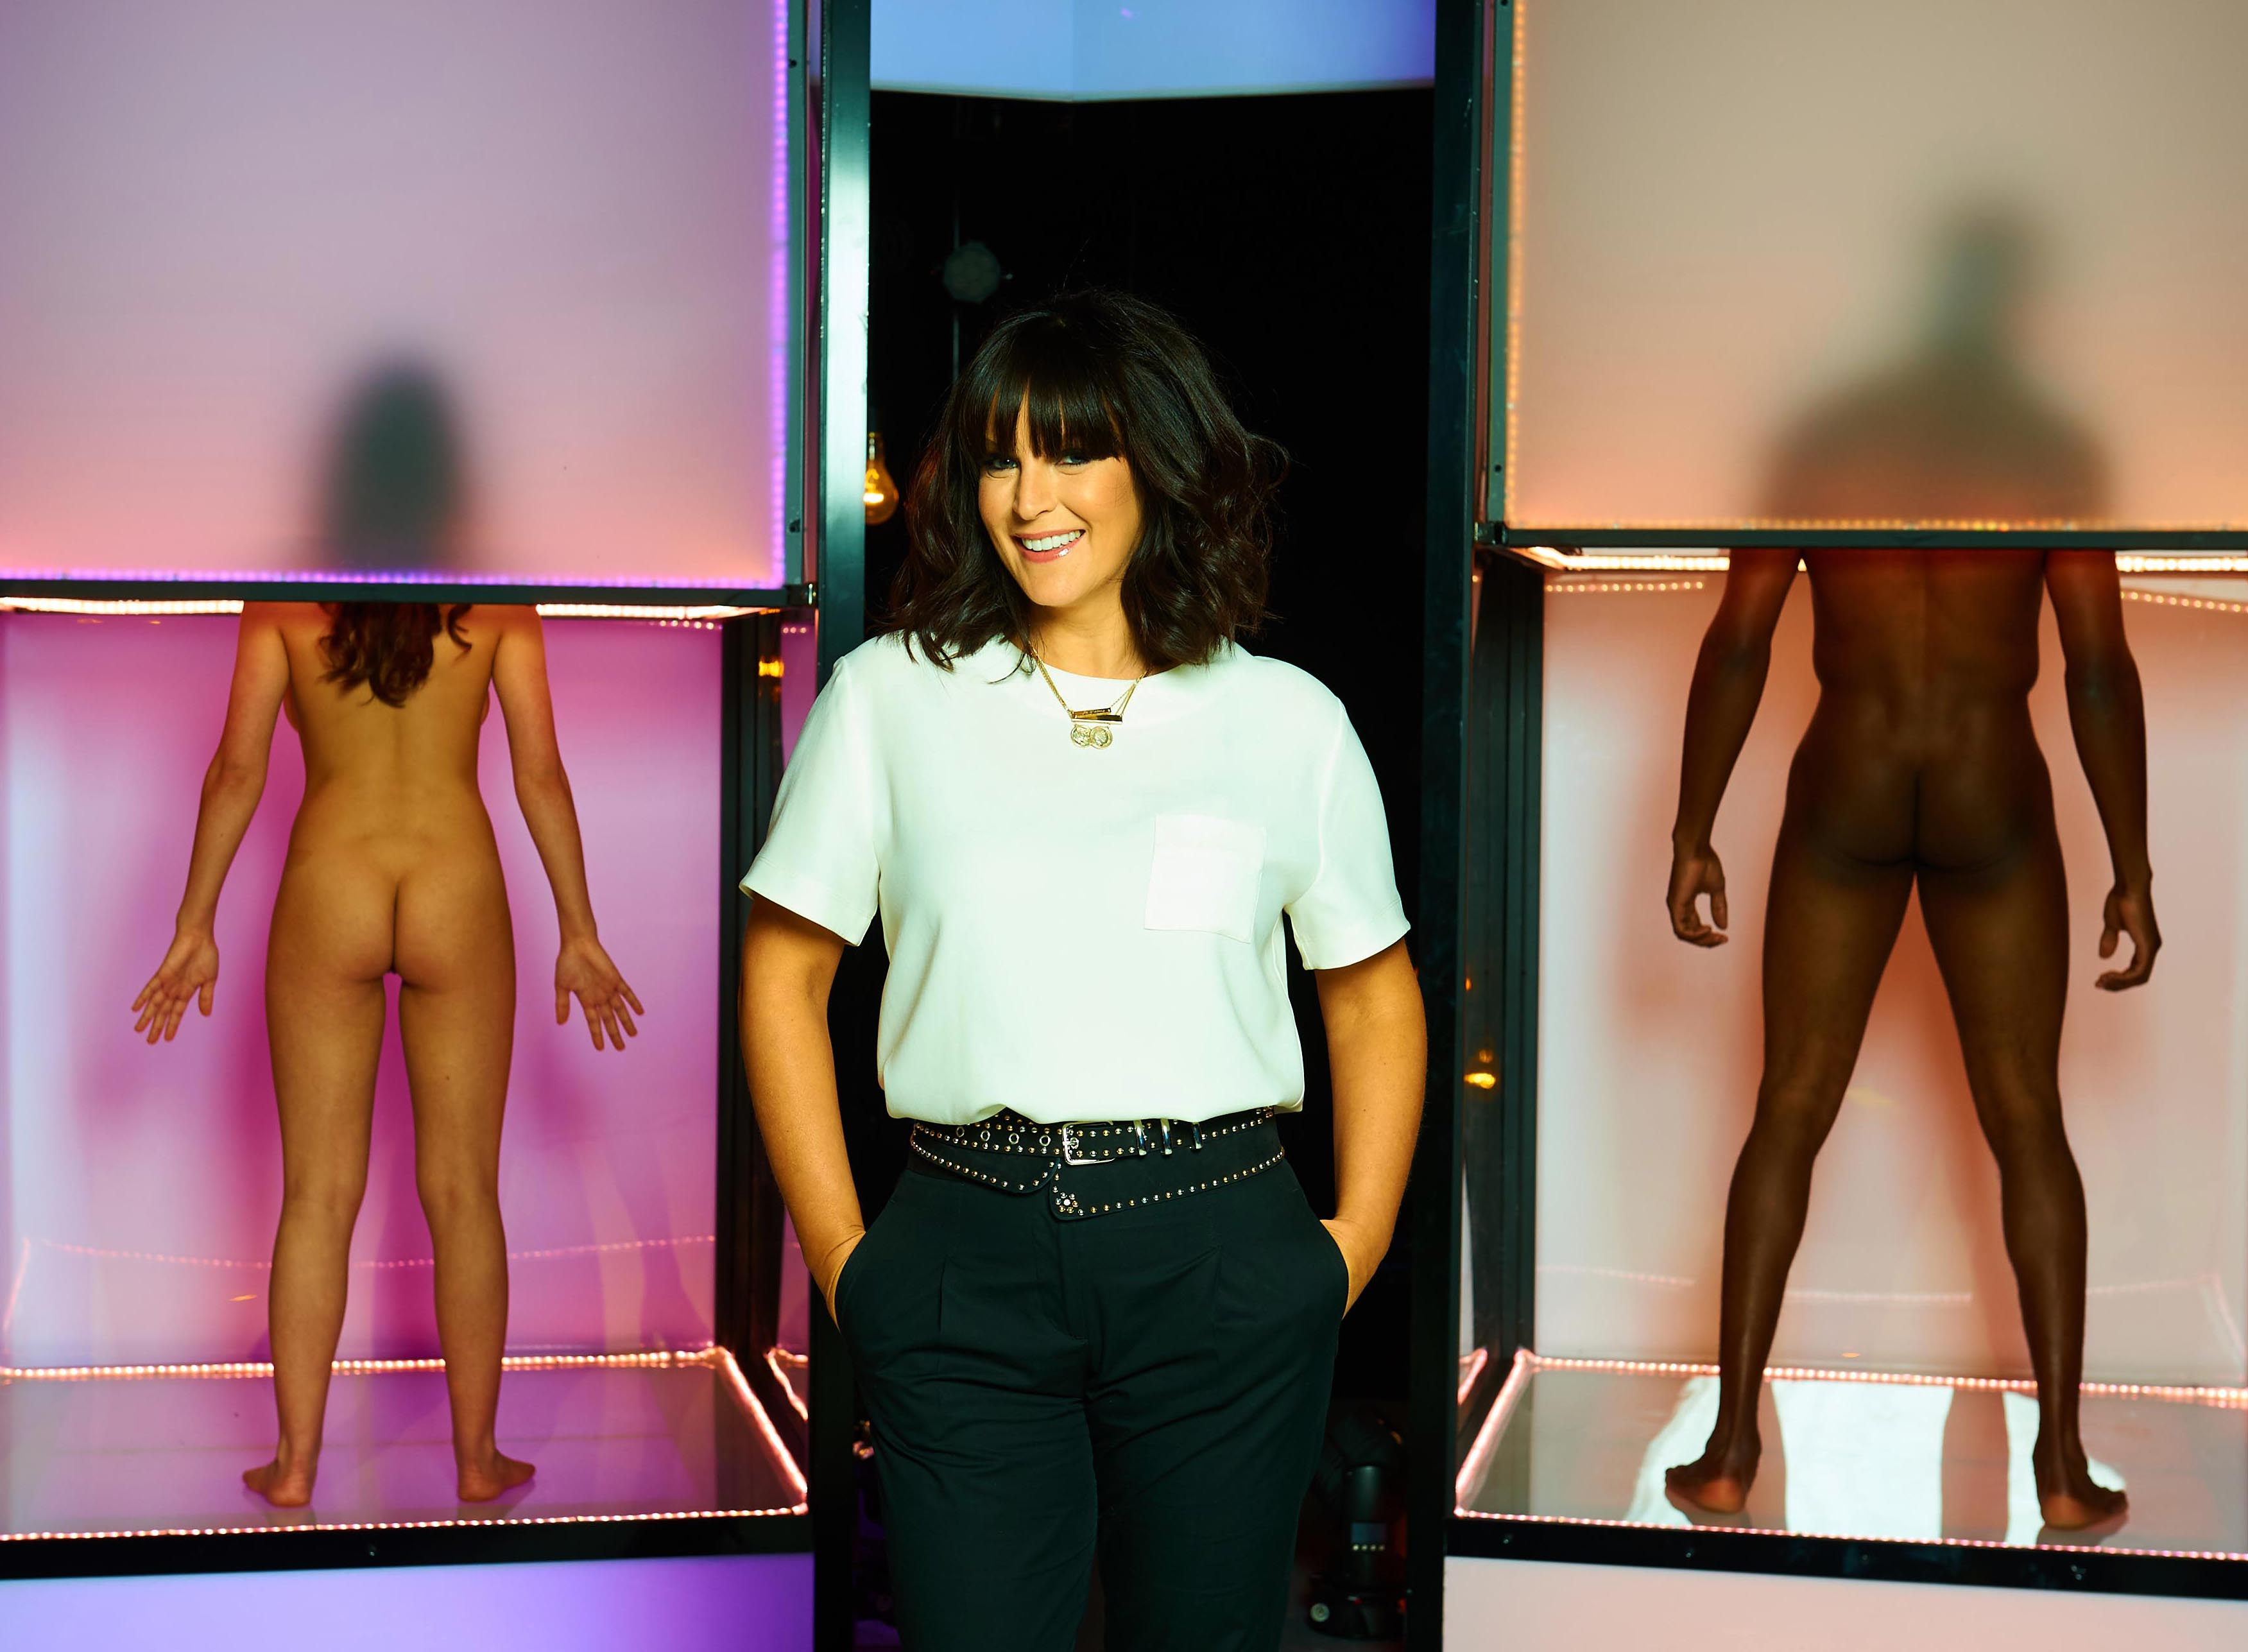 The show is fronted by Anna Richardson